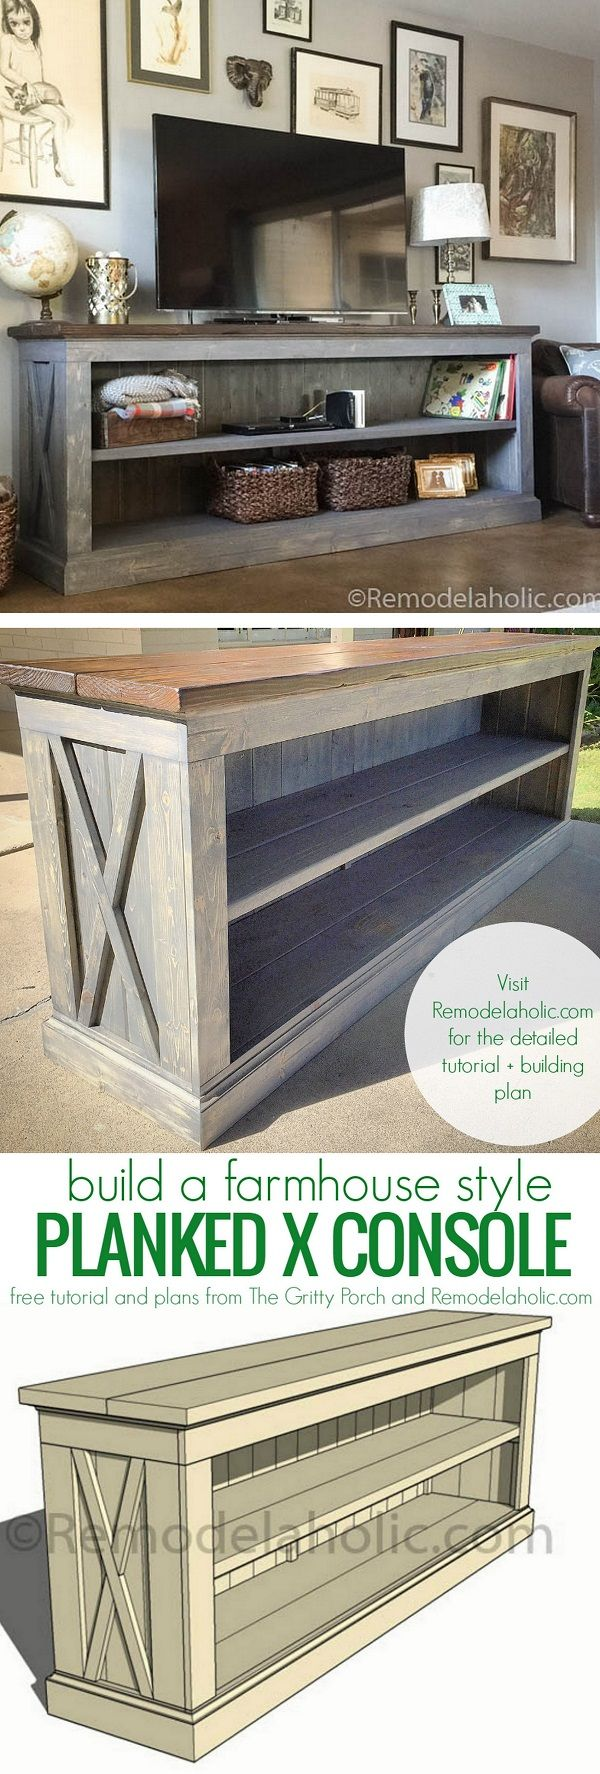 Check out how to build a DIY farmhouse sideboard TV console @istandarddesign